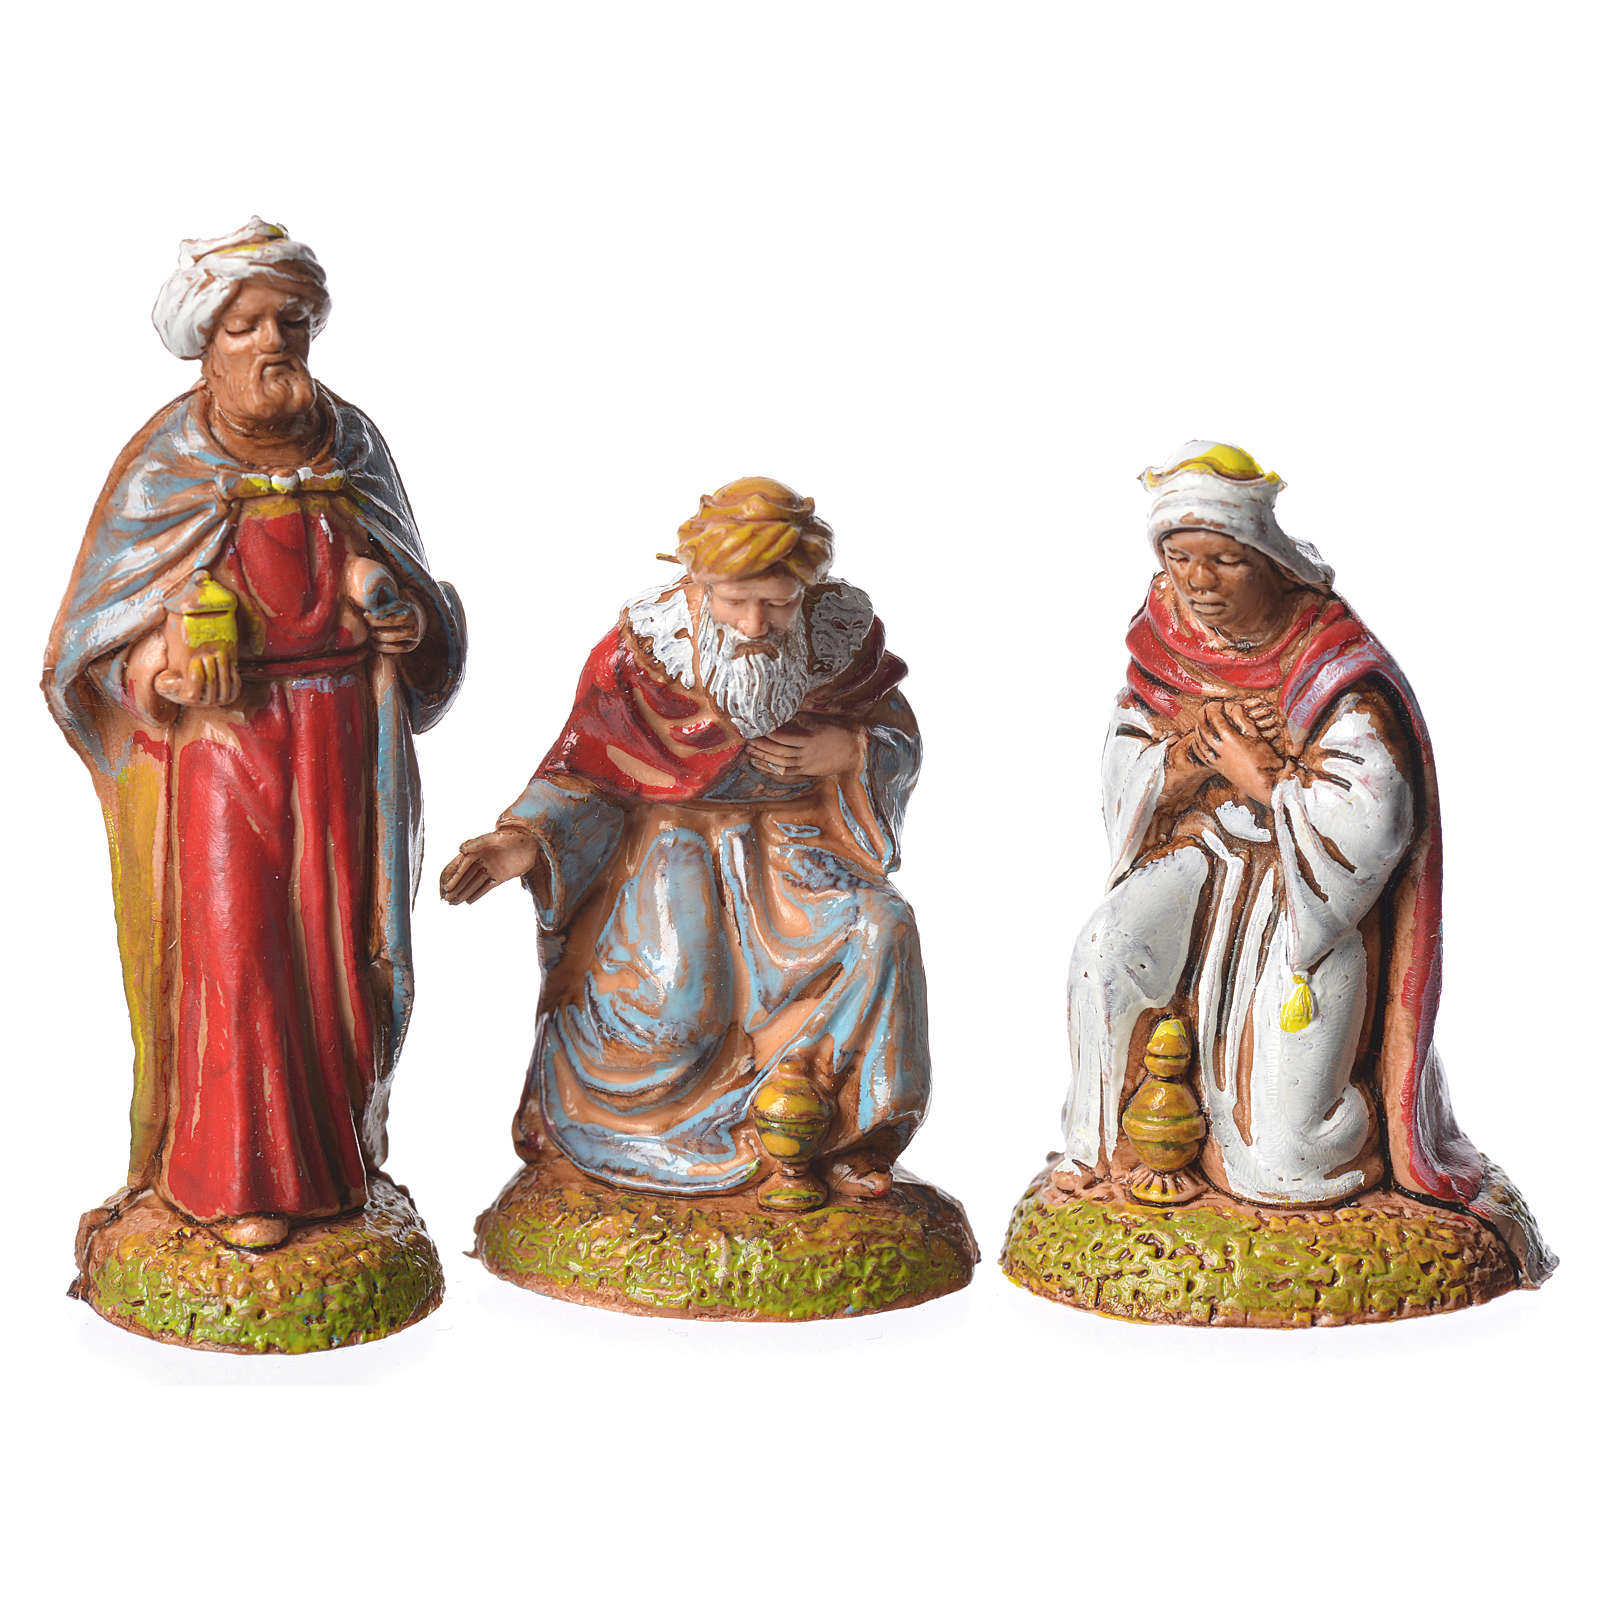 Wise men, 3 nativity figurines, 6cm Moranduzzo 4